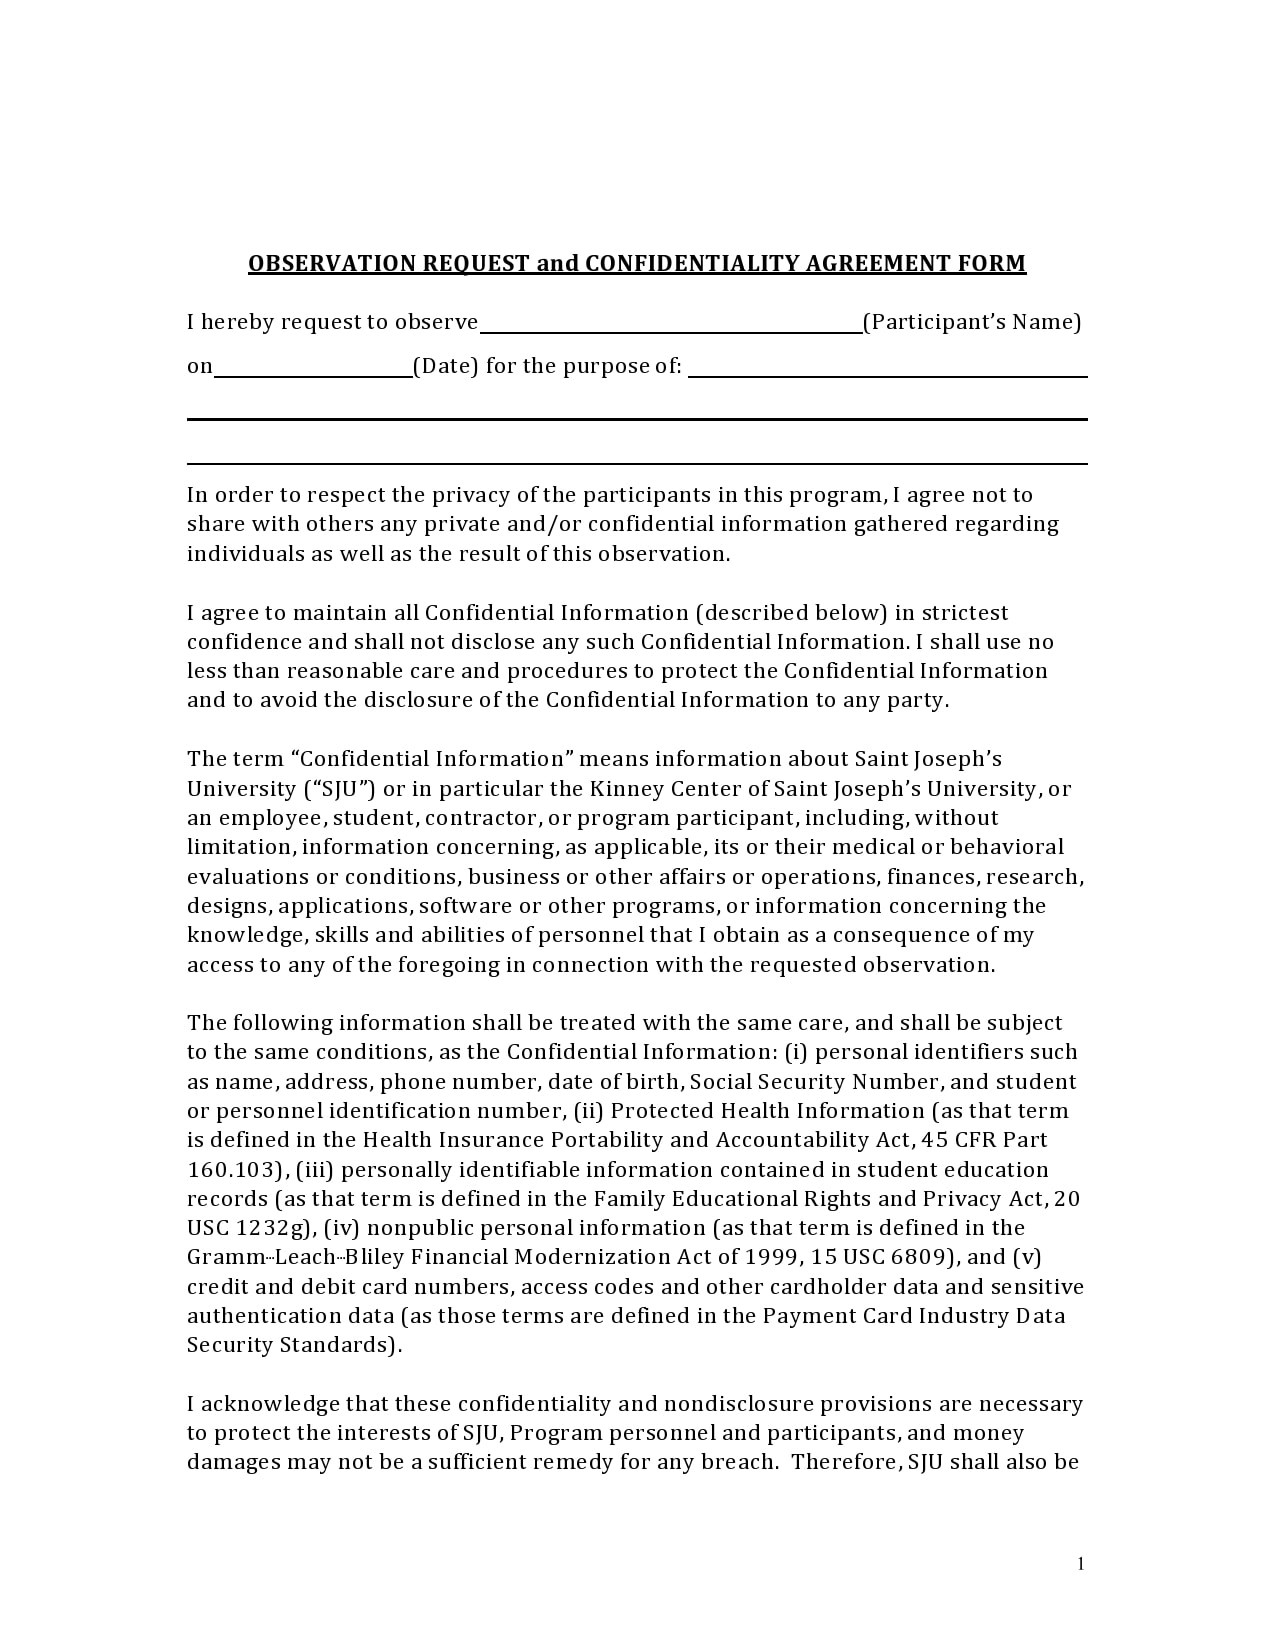 confidentiality agreement template 21